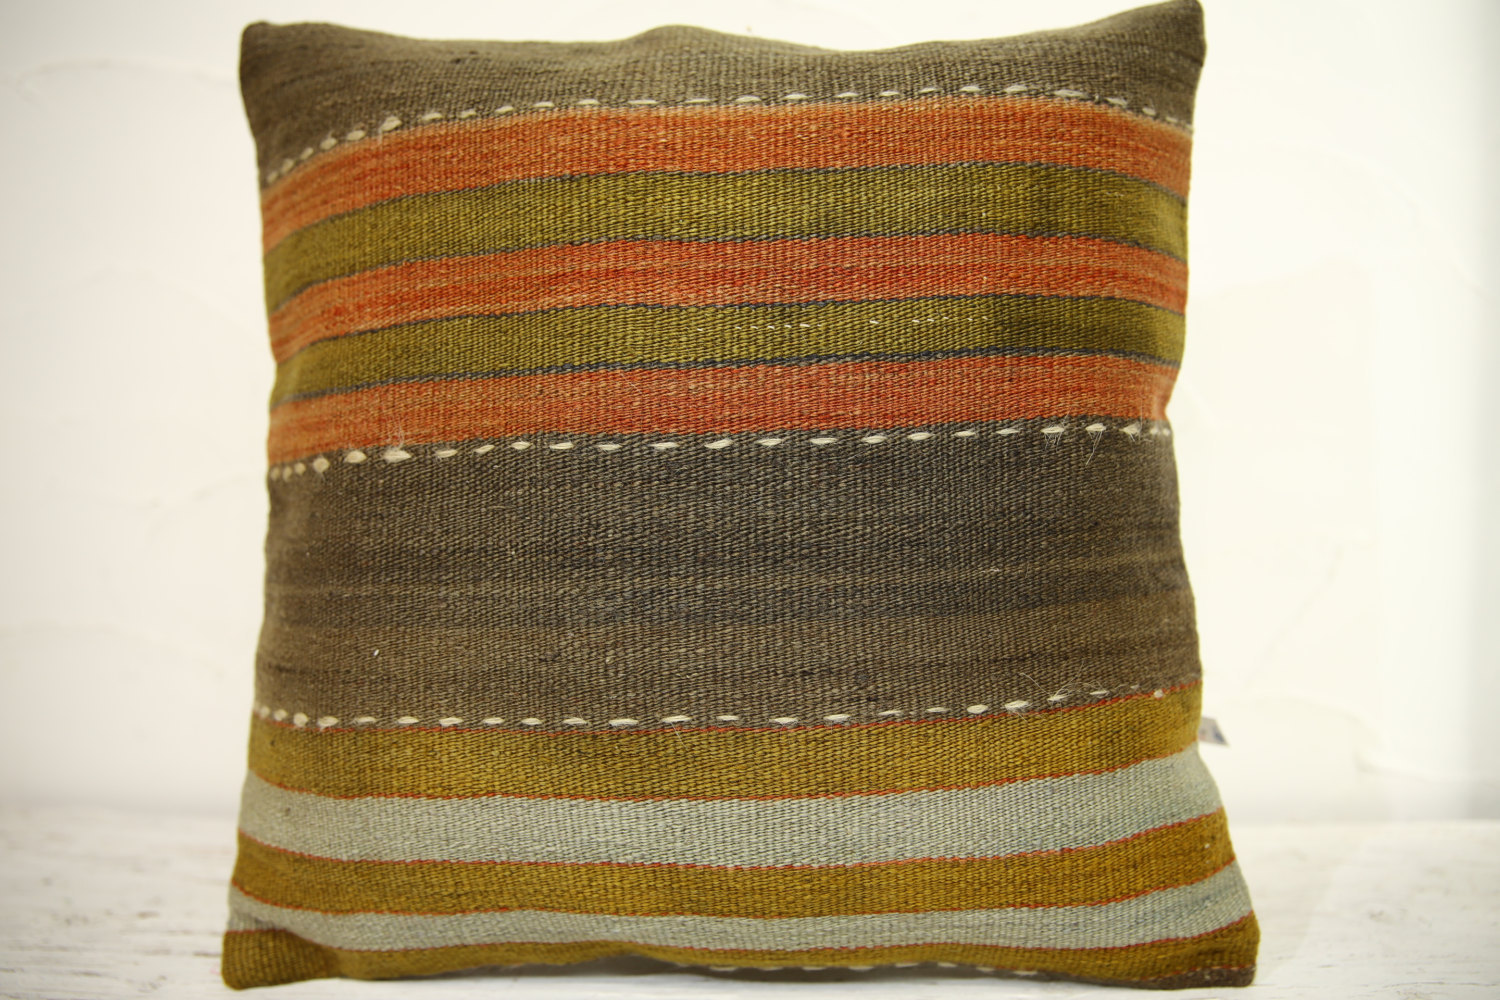 Kilim Pillows | 16x16 | Turkish pillows | 1351 | Accent Pillow,Decorative Pillow